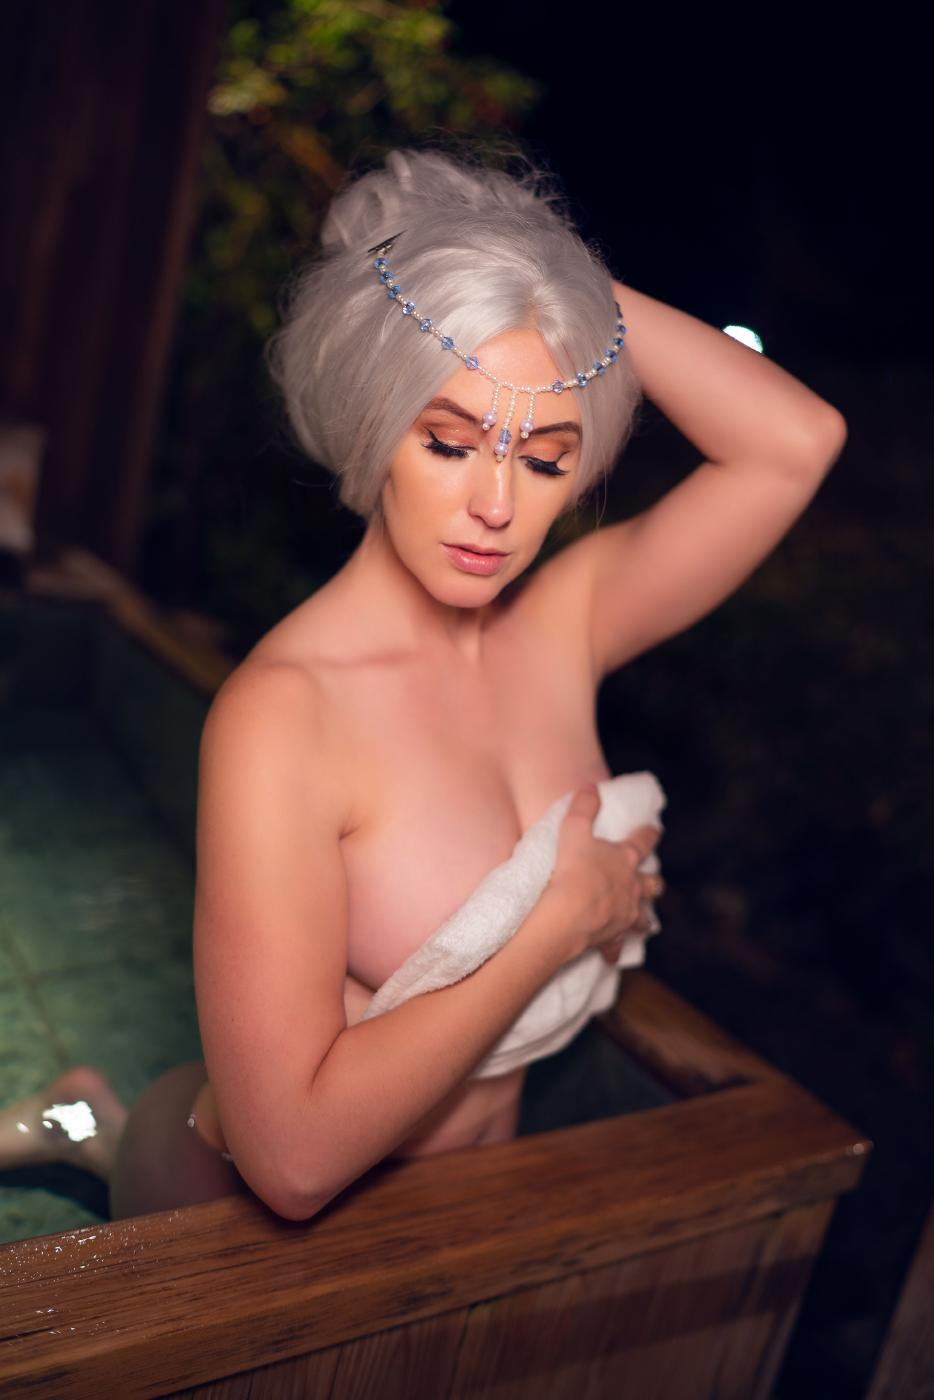 Meg Turney Onlyfans Nude Winter Goddess Onsen Leaked0008